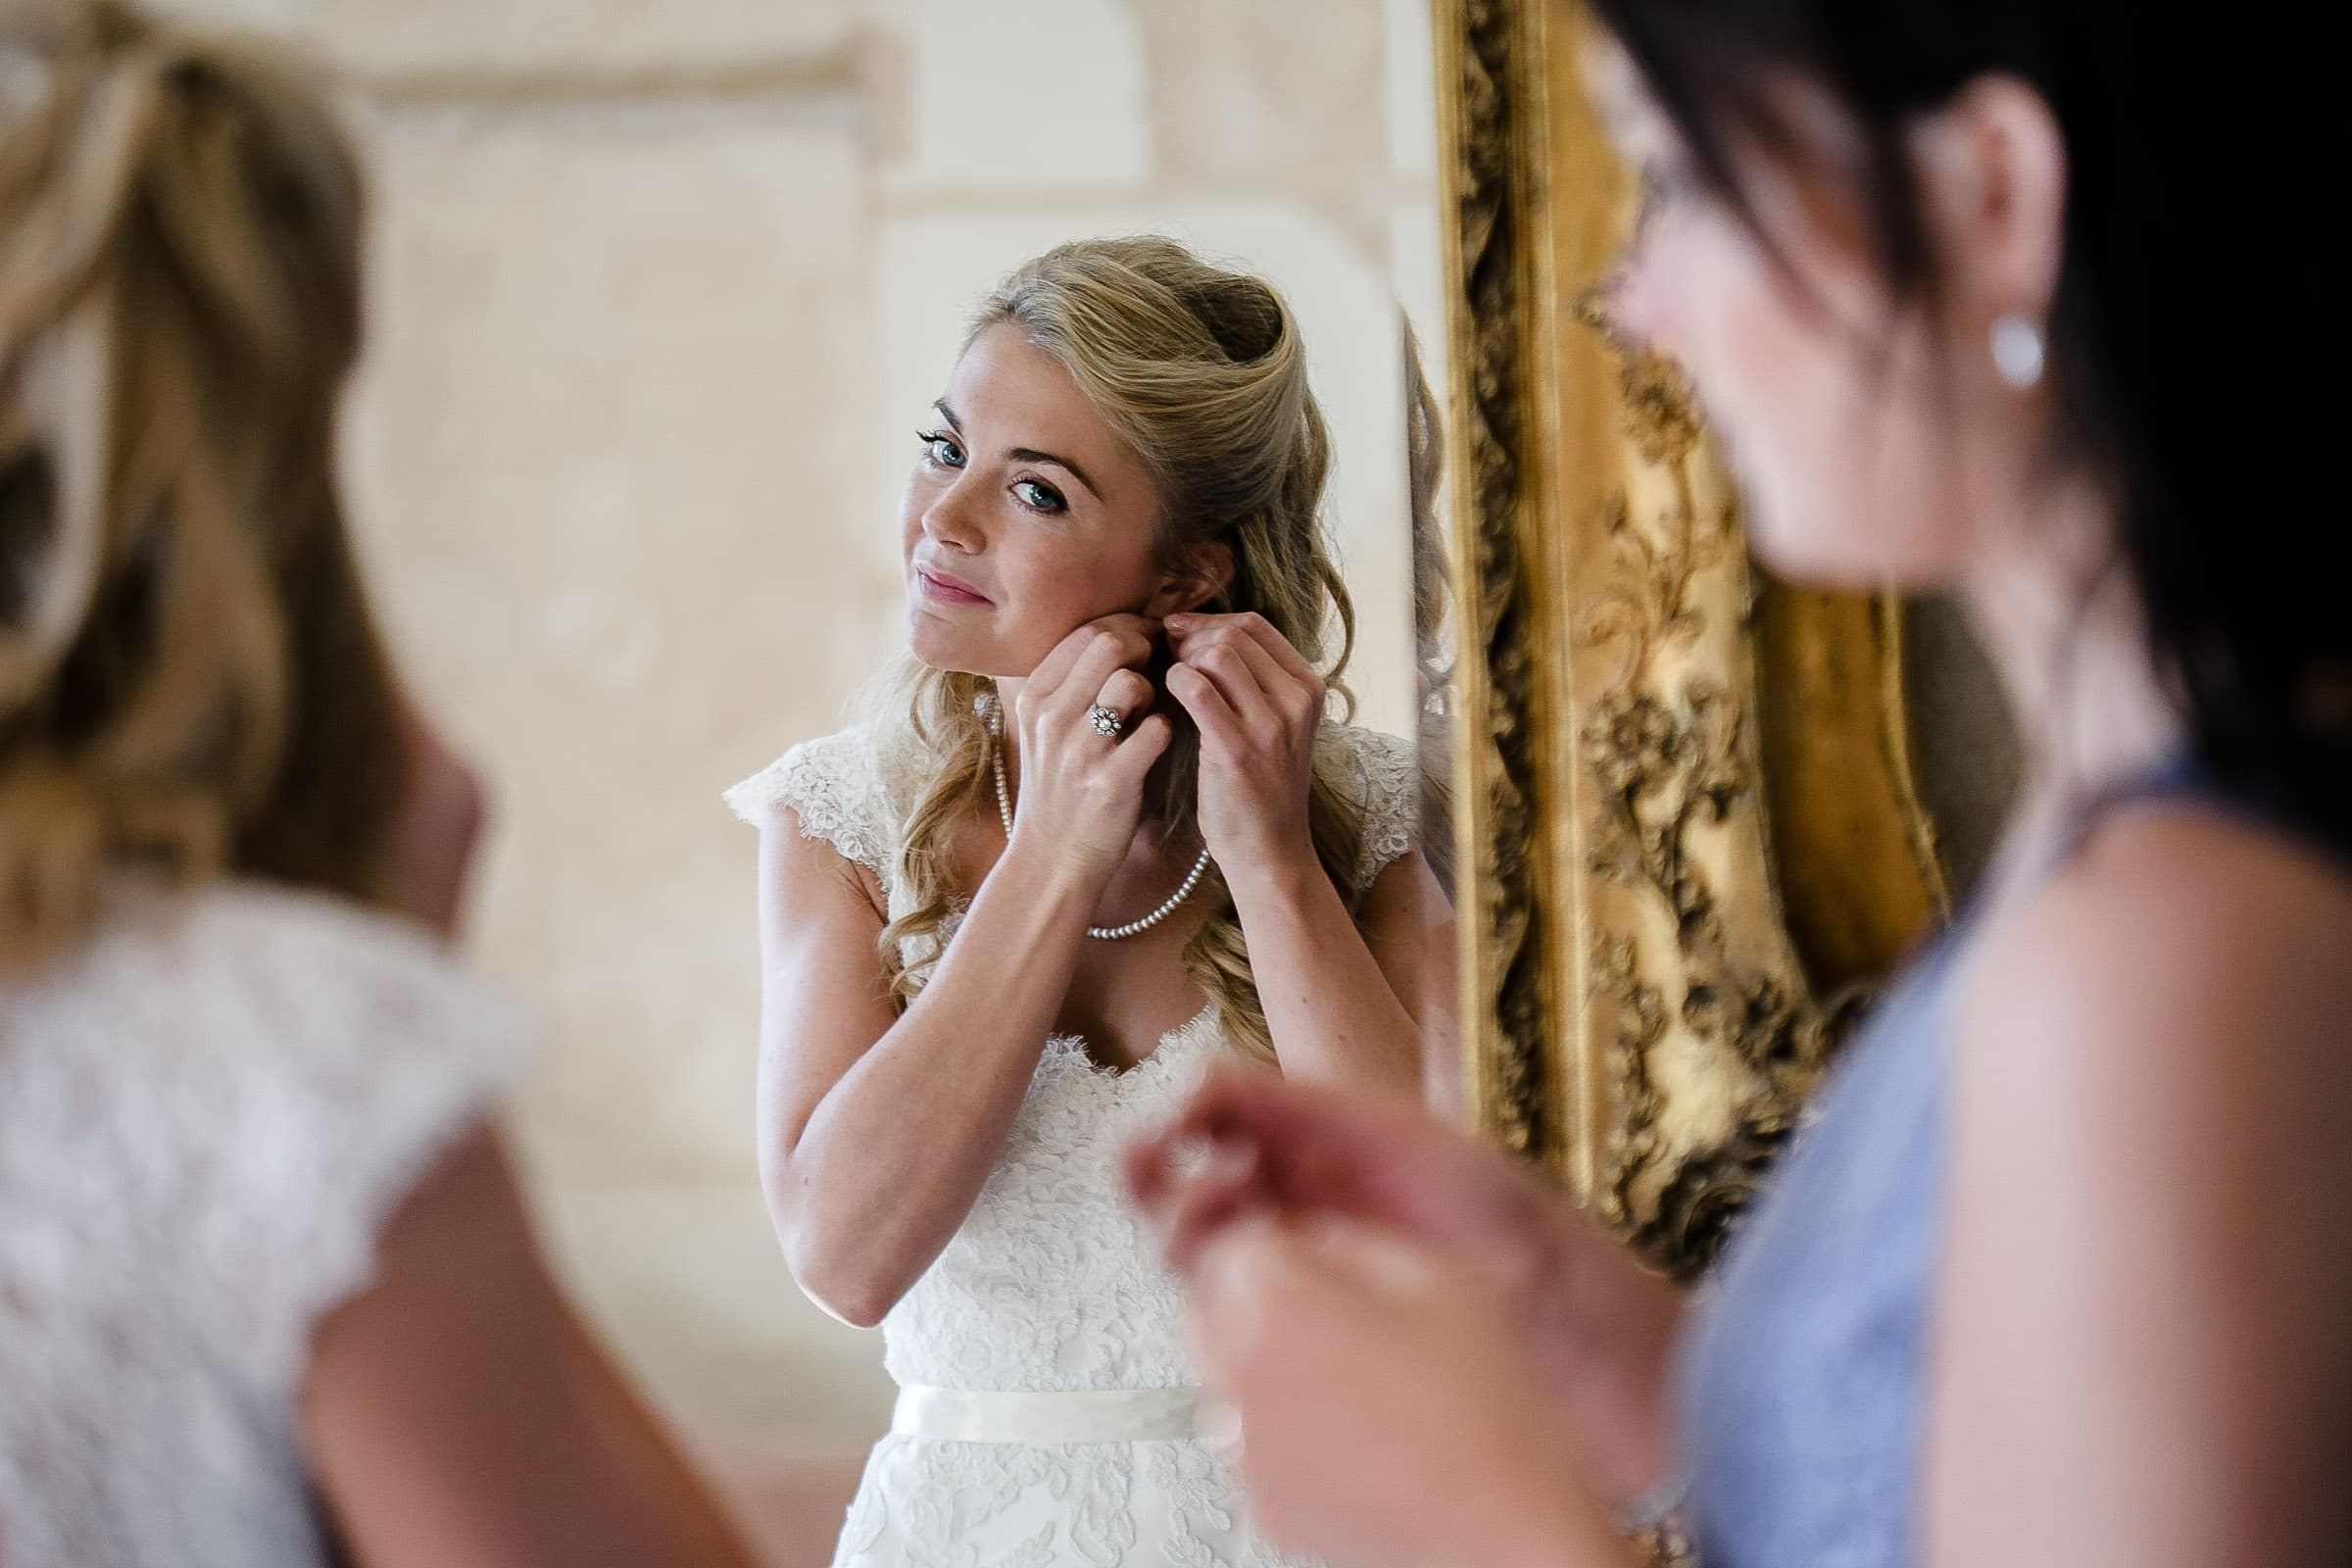 Bride getting ready for her French Chateau wedding in Normandy, France